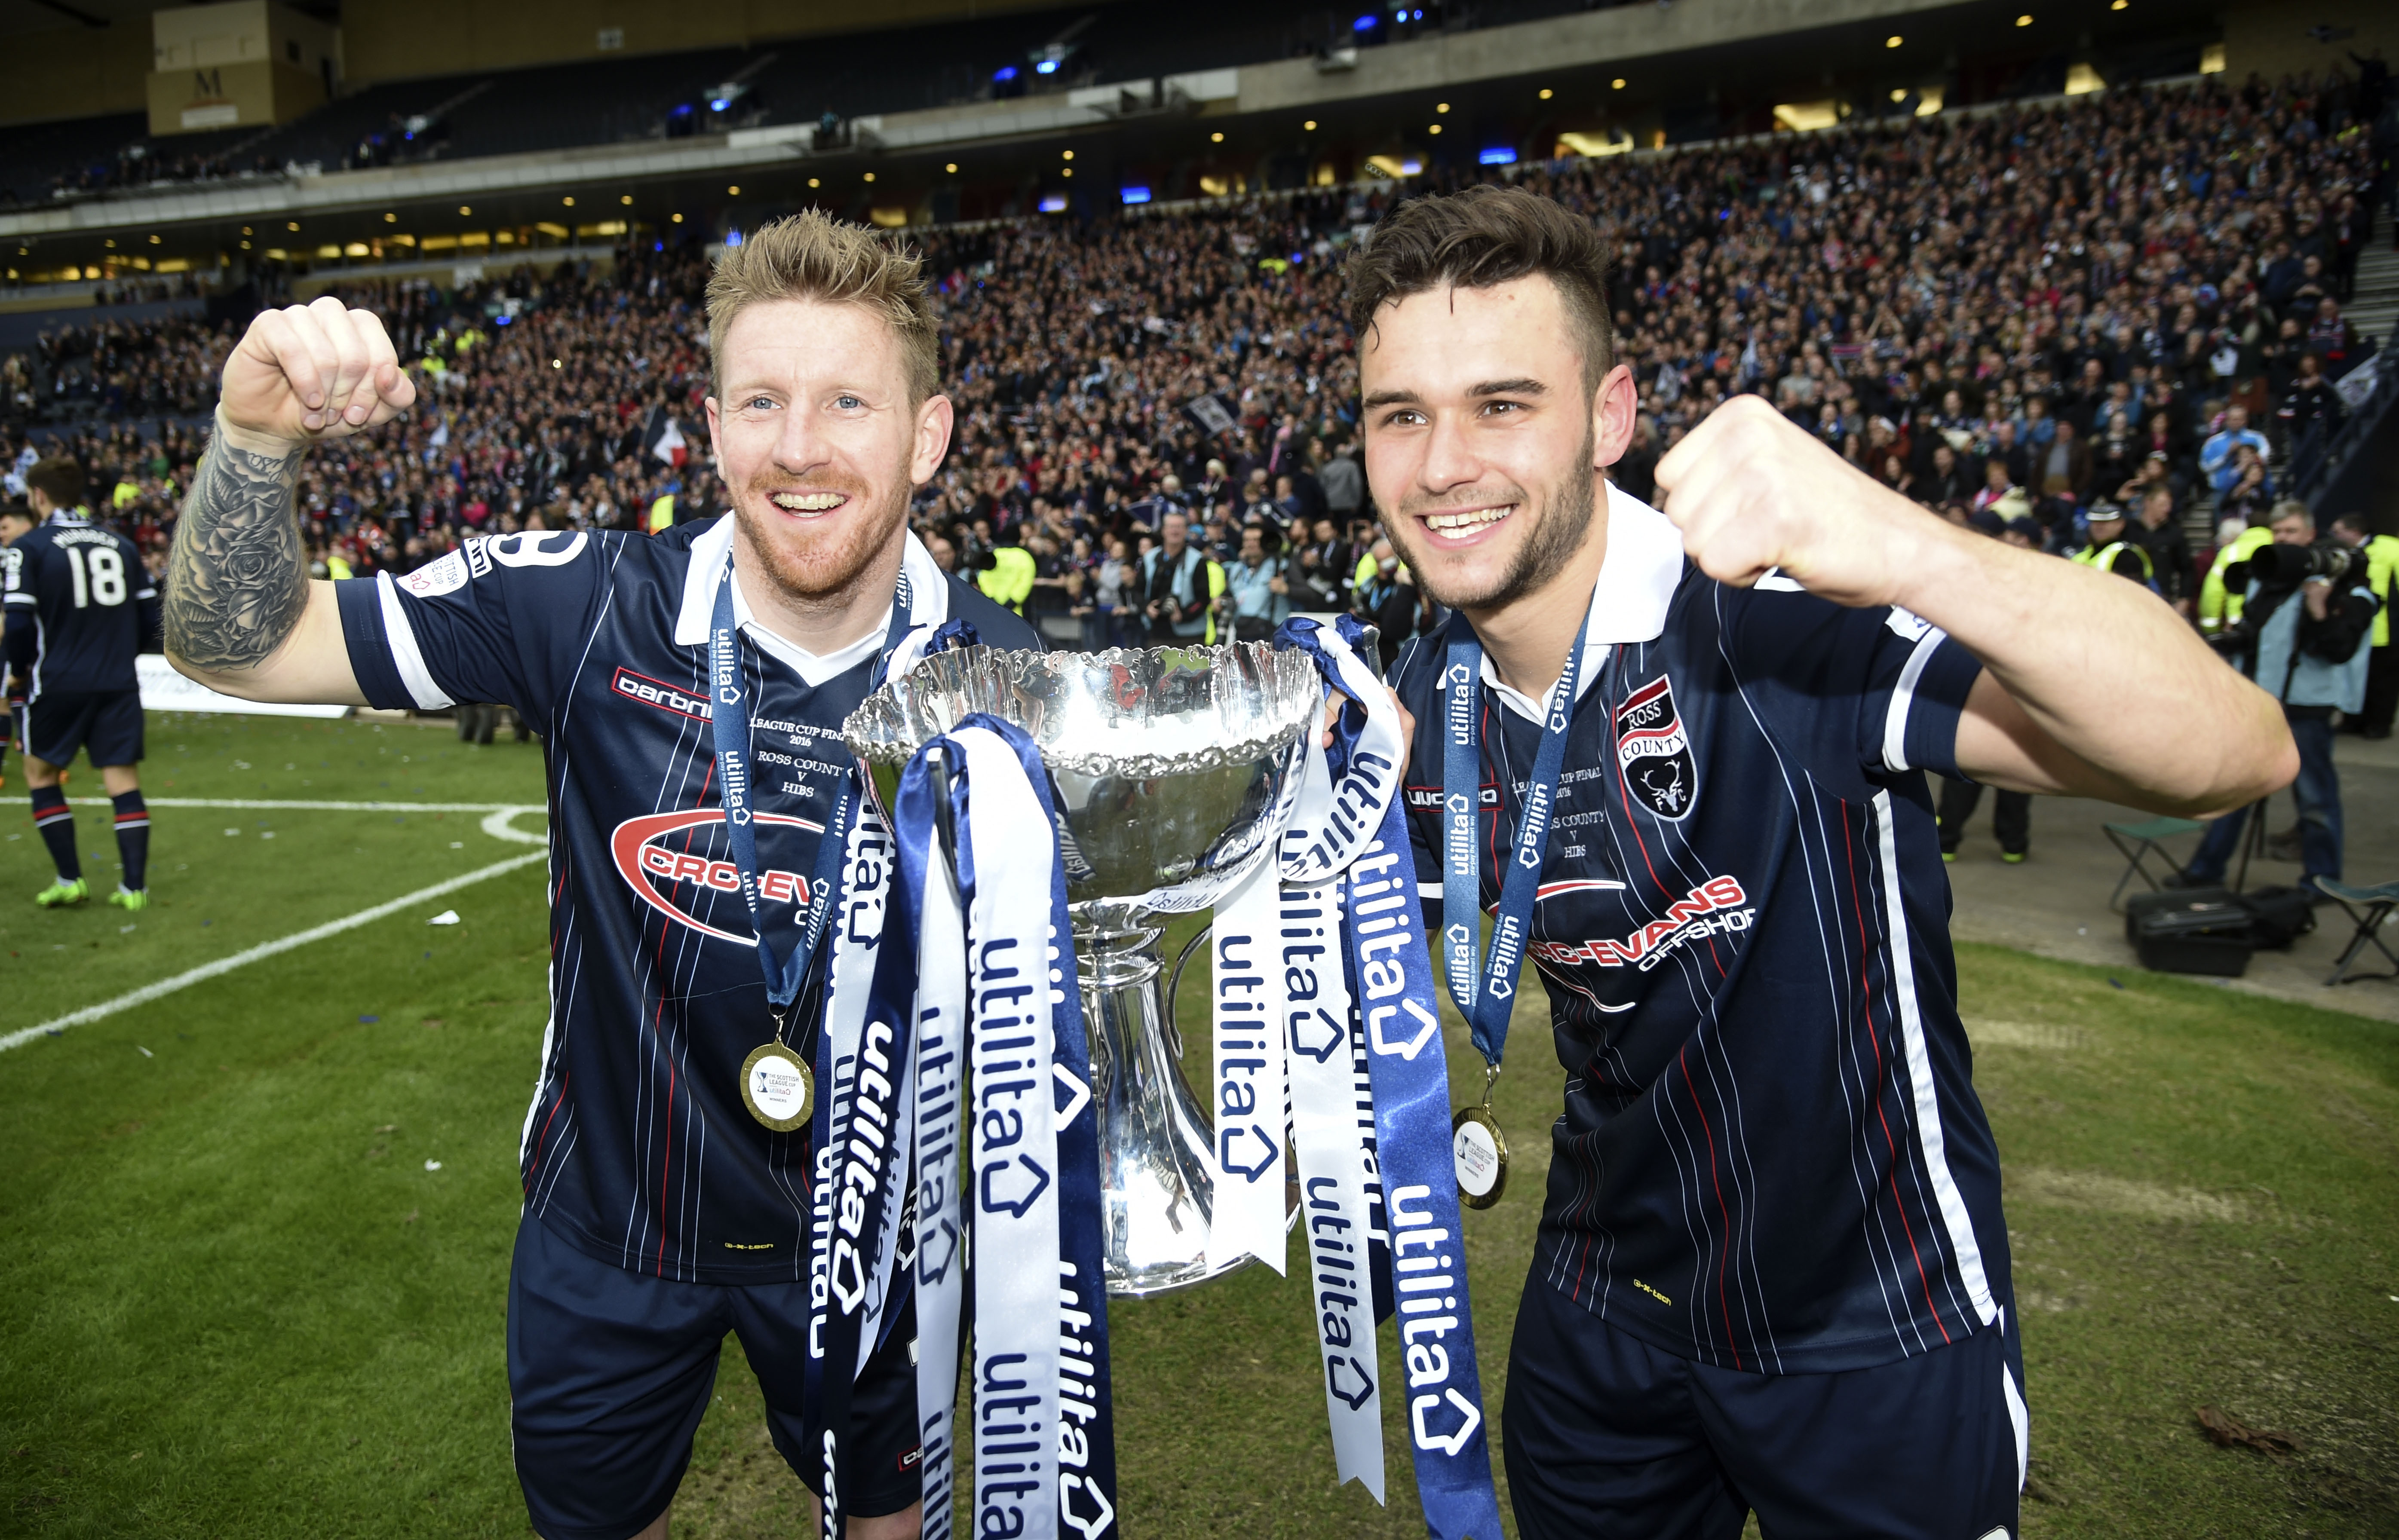 Ross County's Michael Gardyne (left) and Alex Schalk with the League Cup.